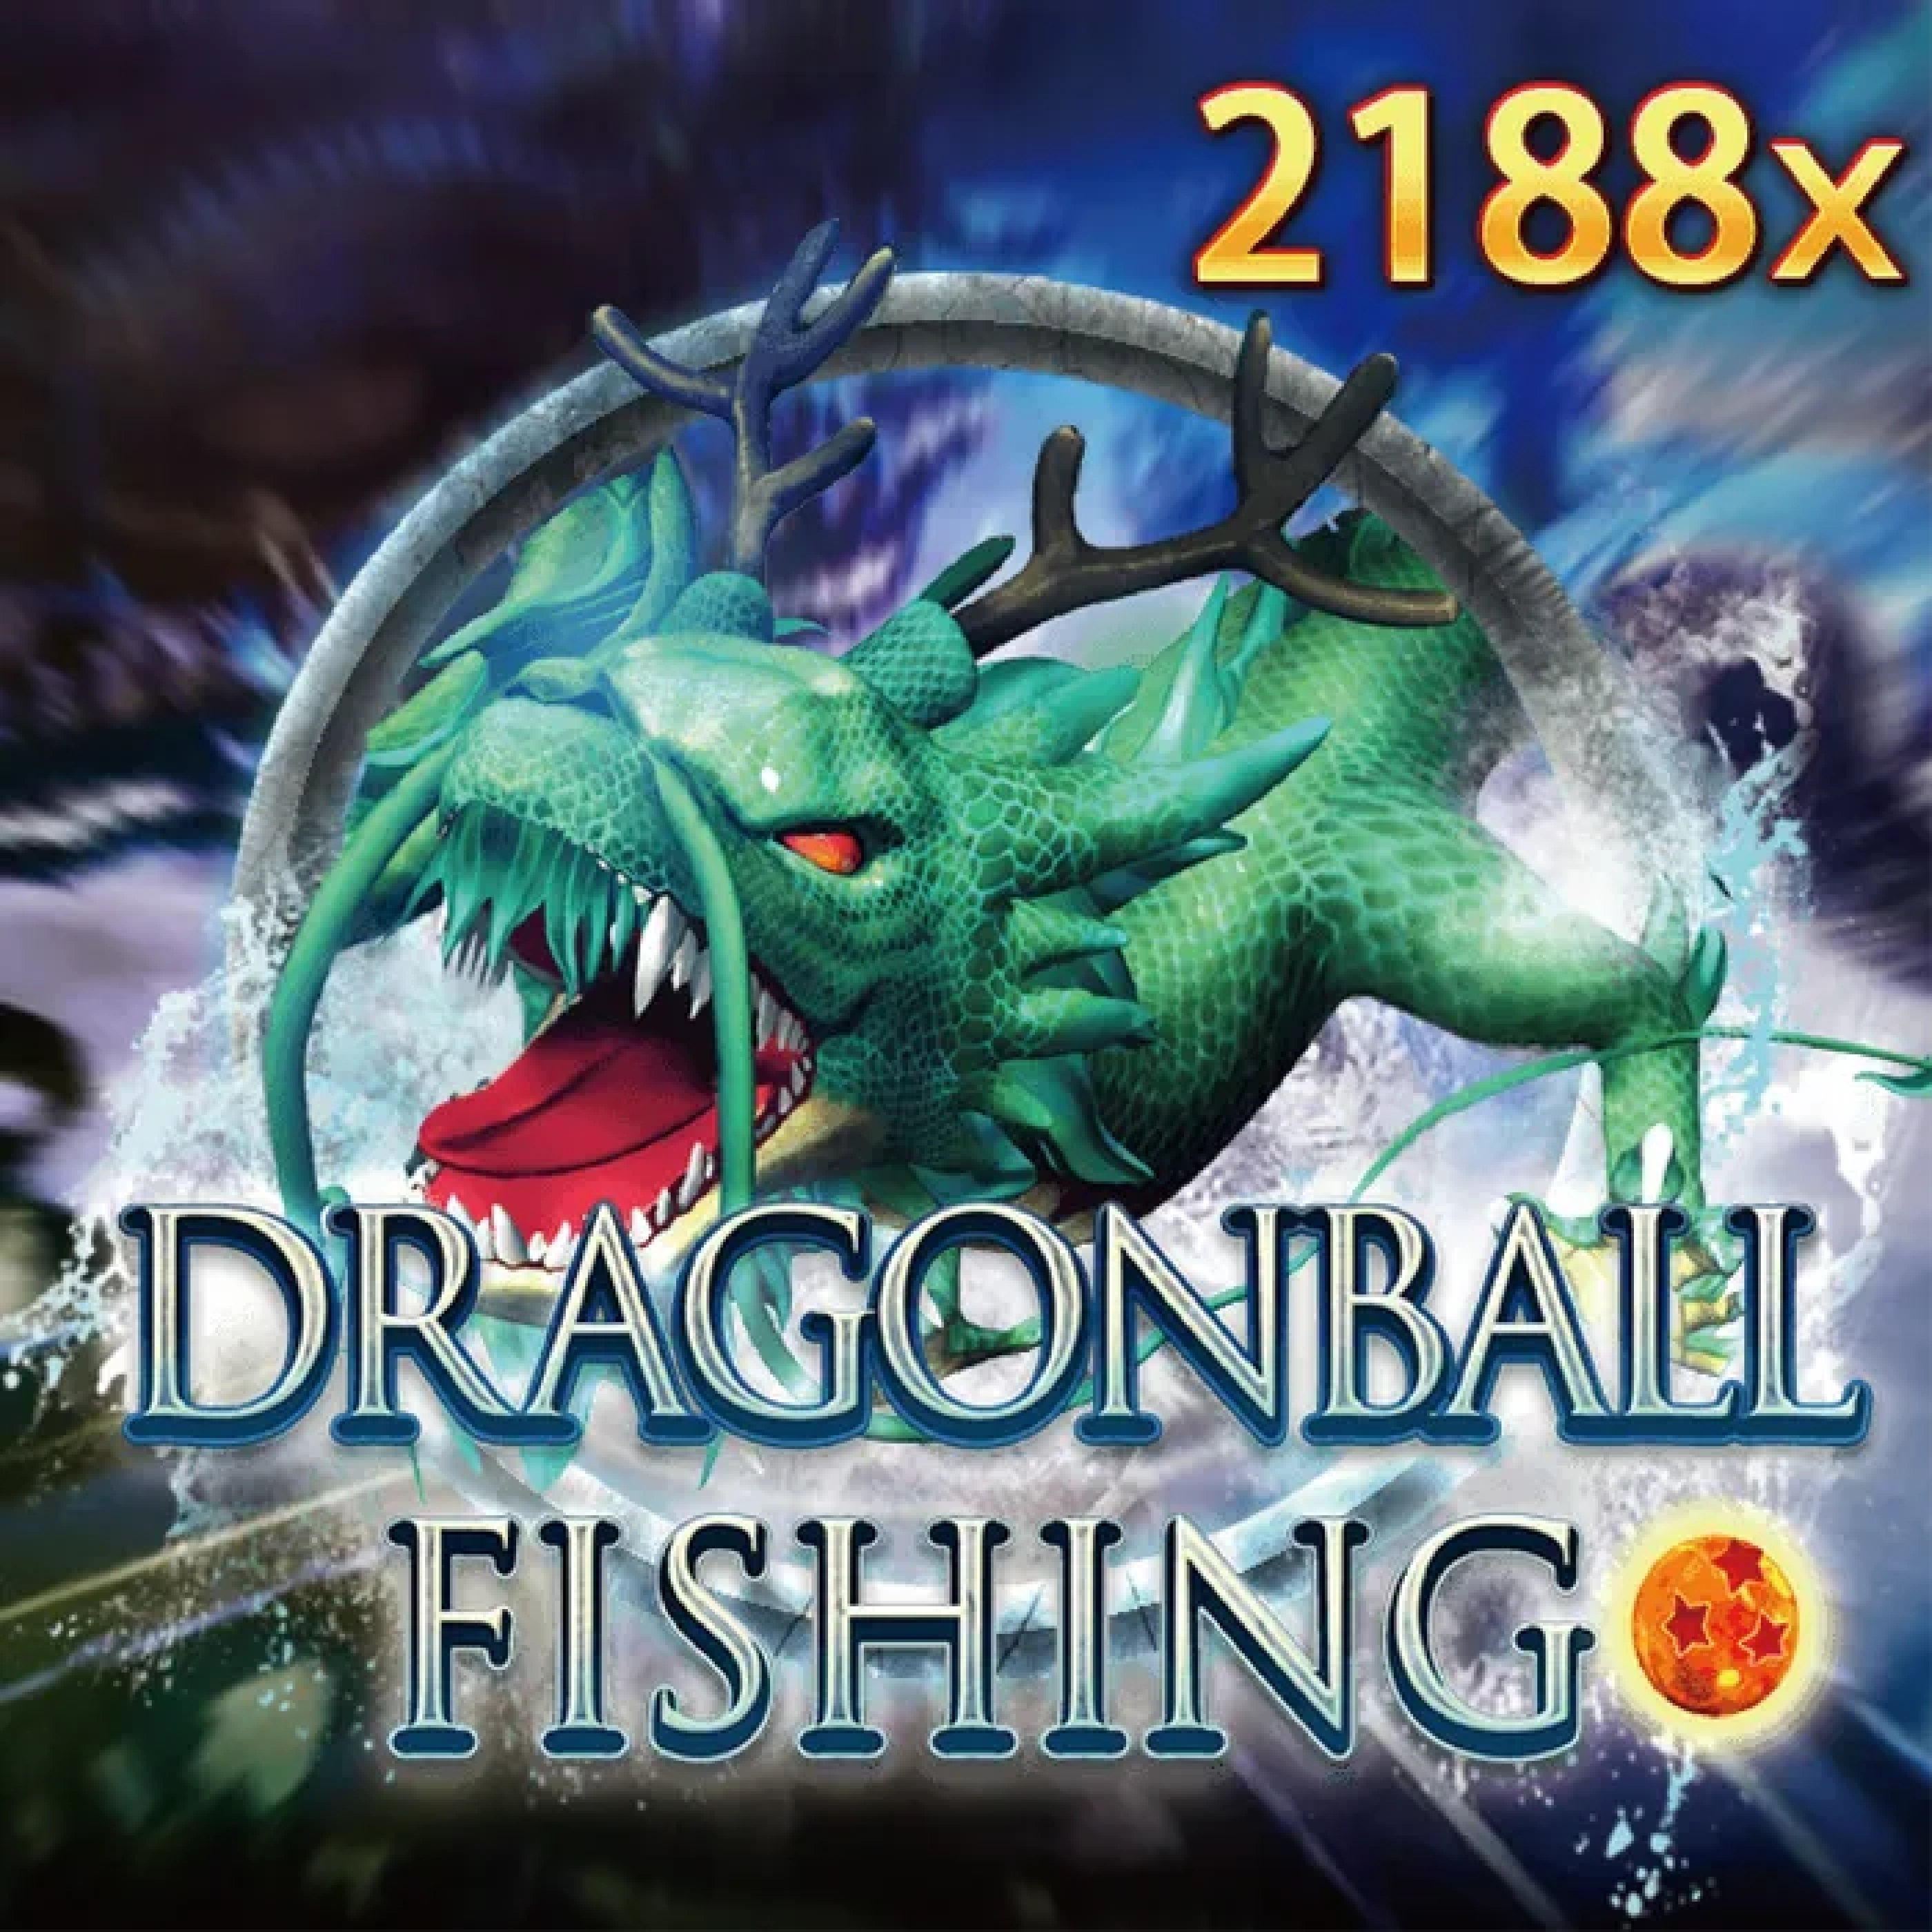 The Dragonball Fishing Online Slot Demo Game by Iconic Gaming